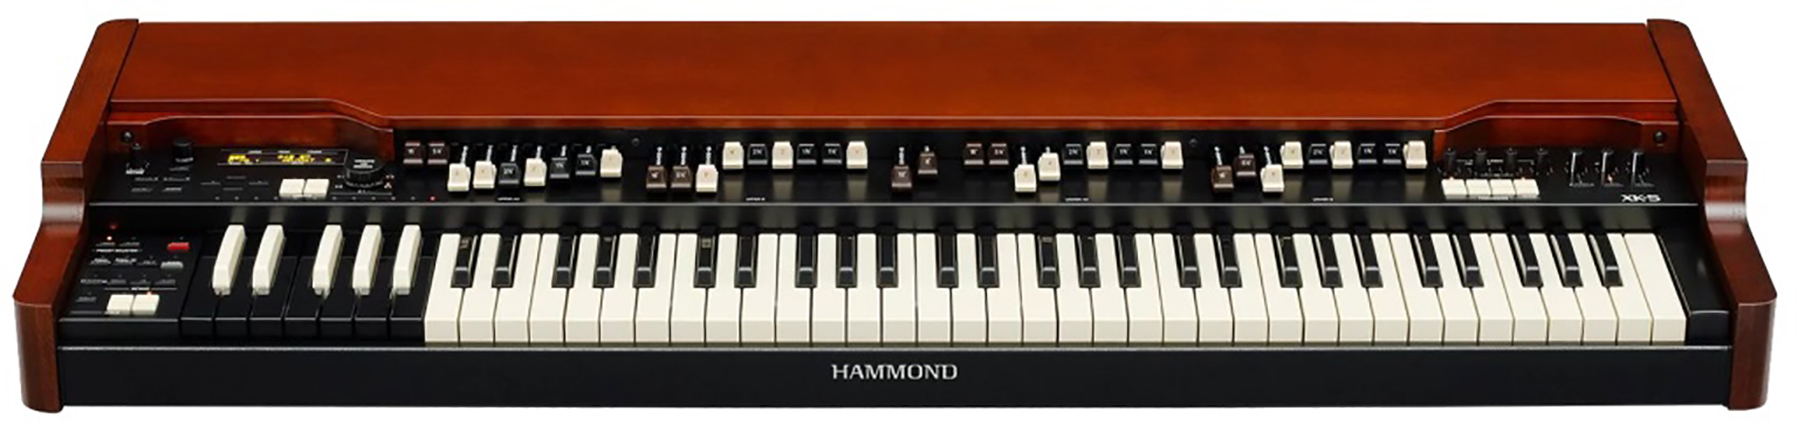 Hammond XK5 Organ, Single Manual